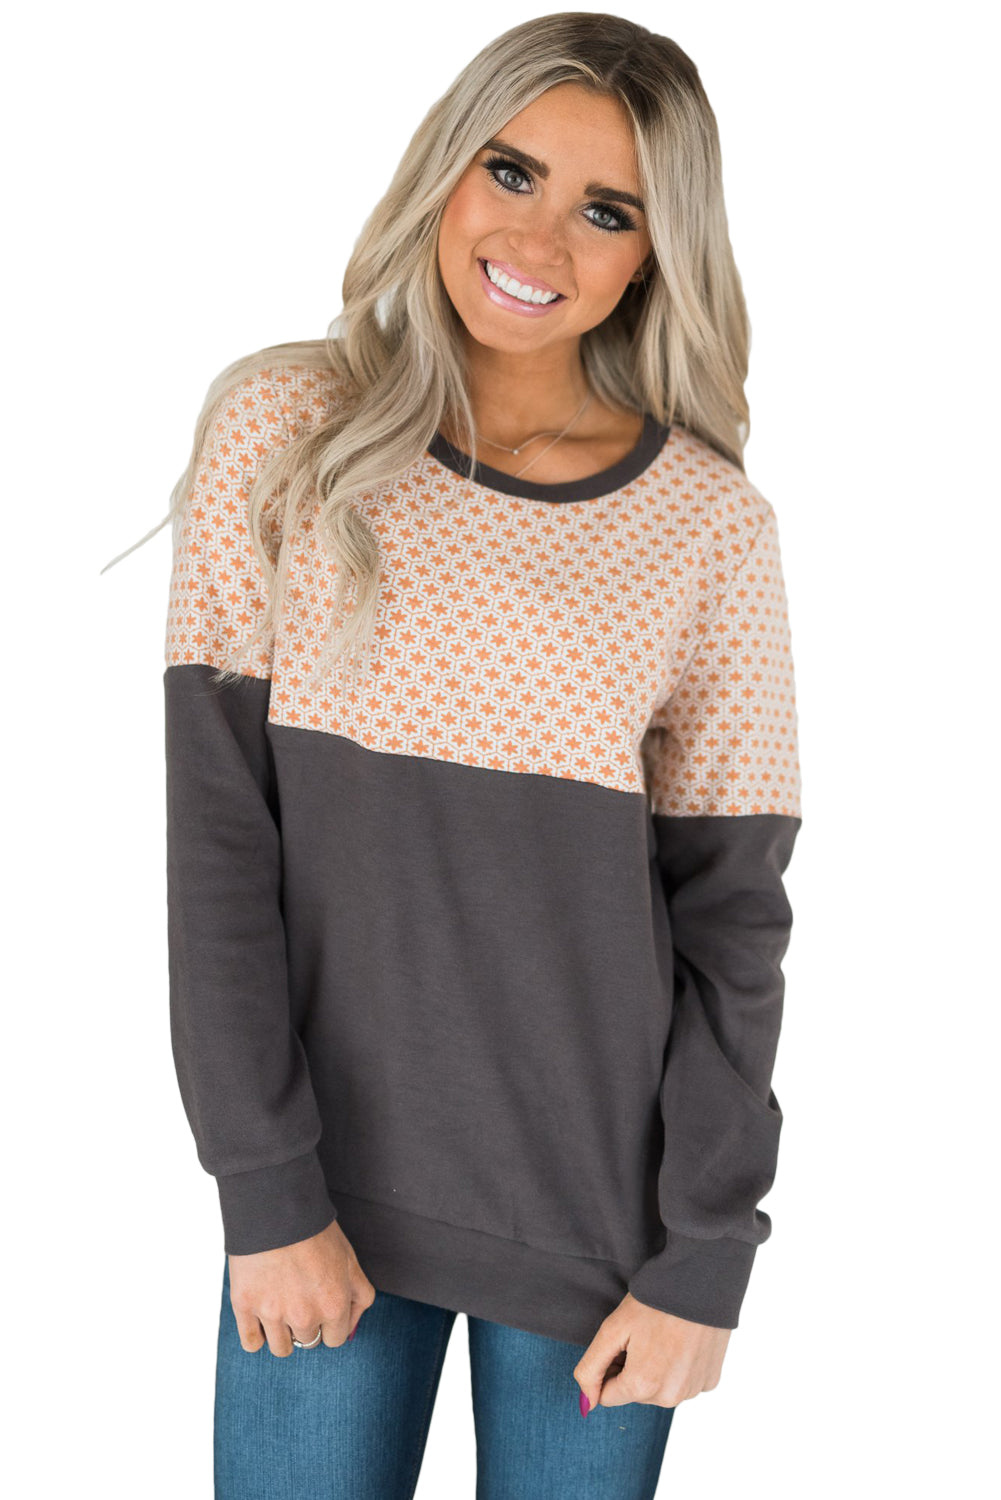 Coral & Gray Snowflake Sweatshirt • PREORDER CLOSES SUNDAY, SEPT. 16